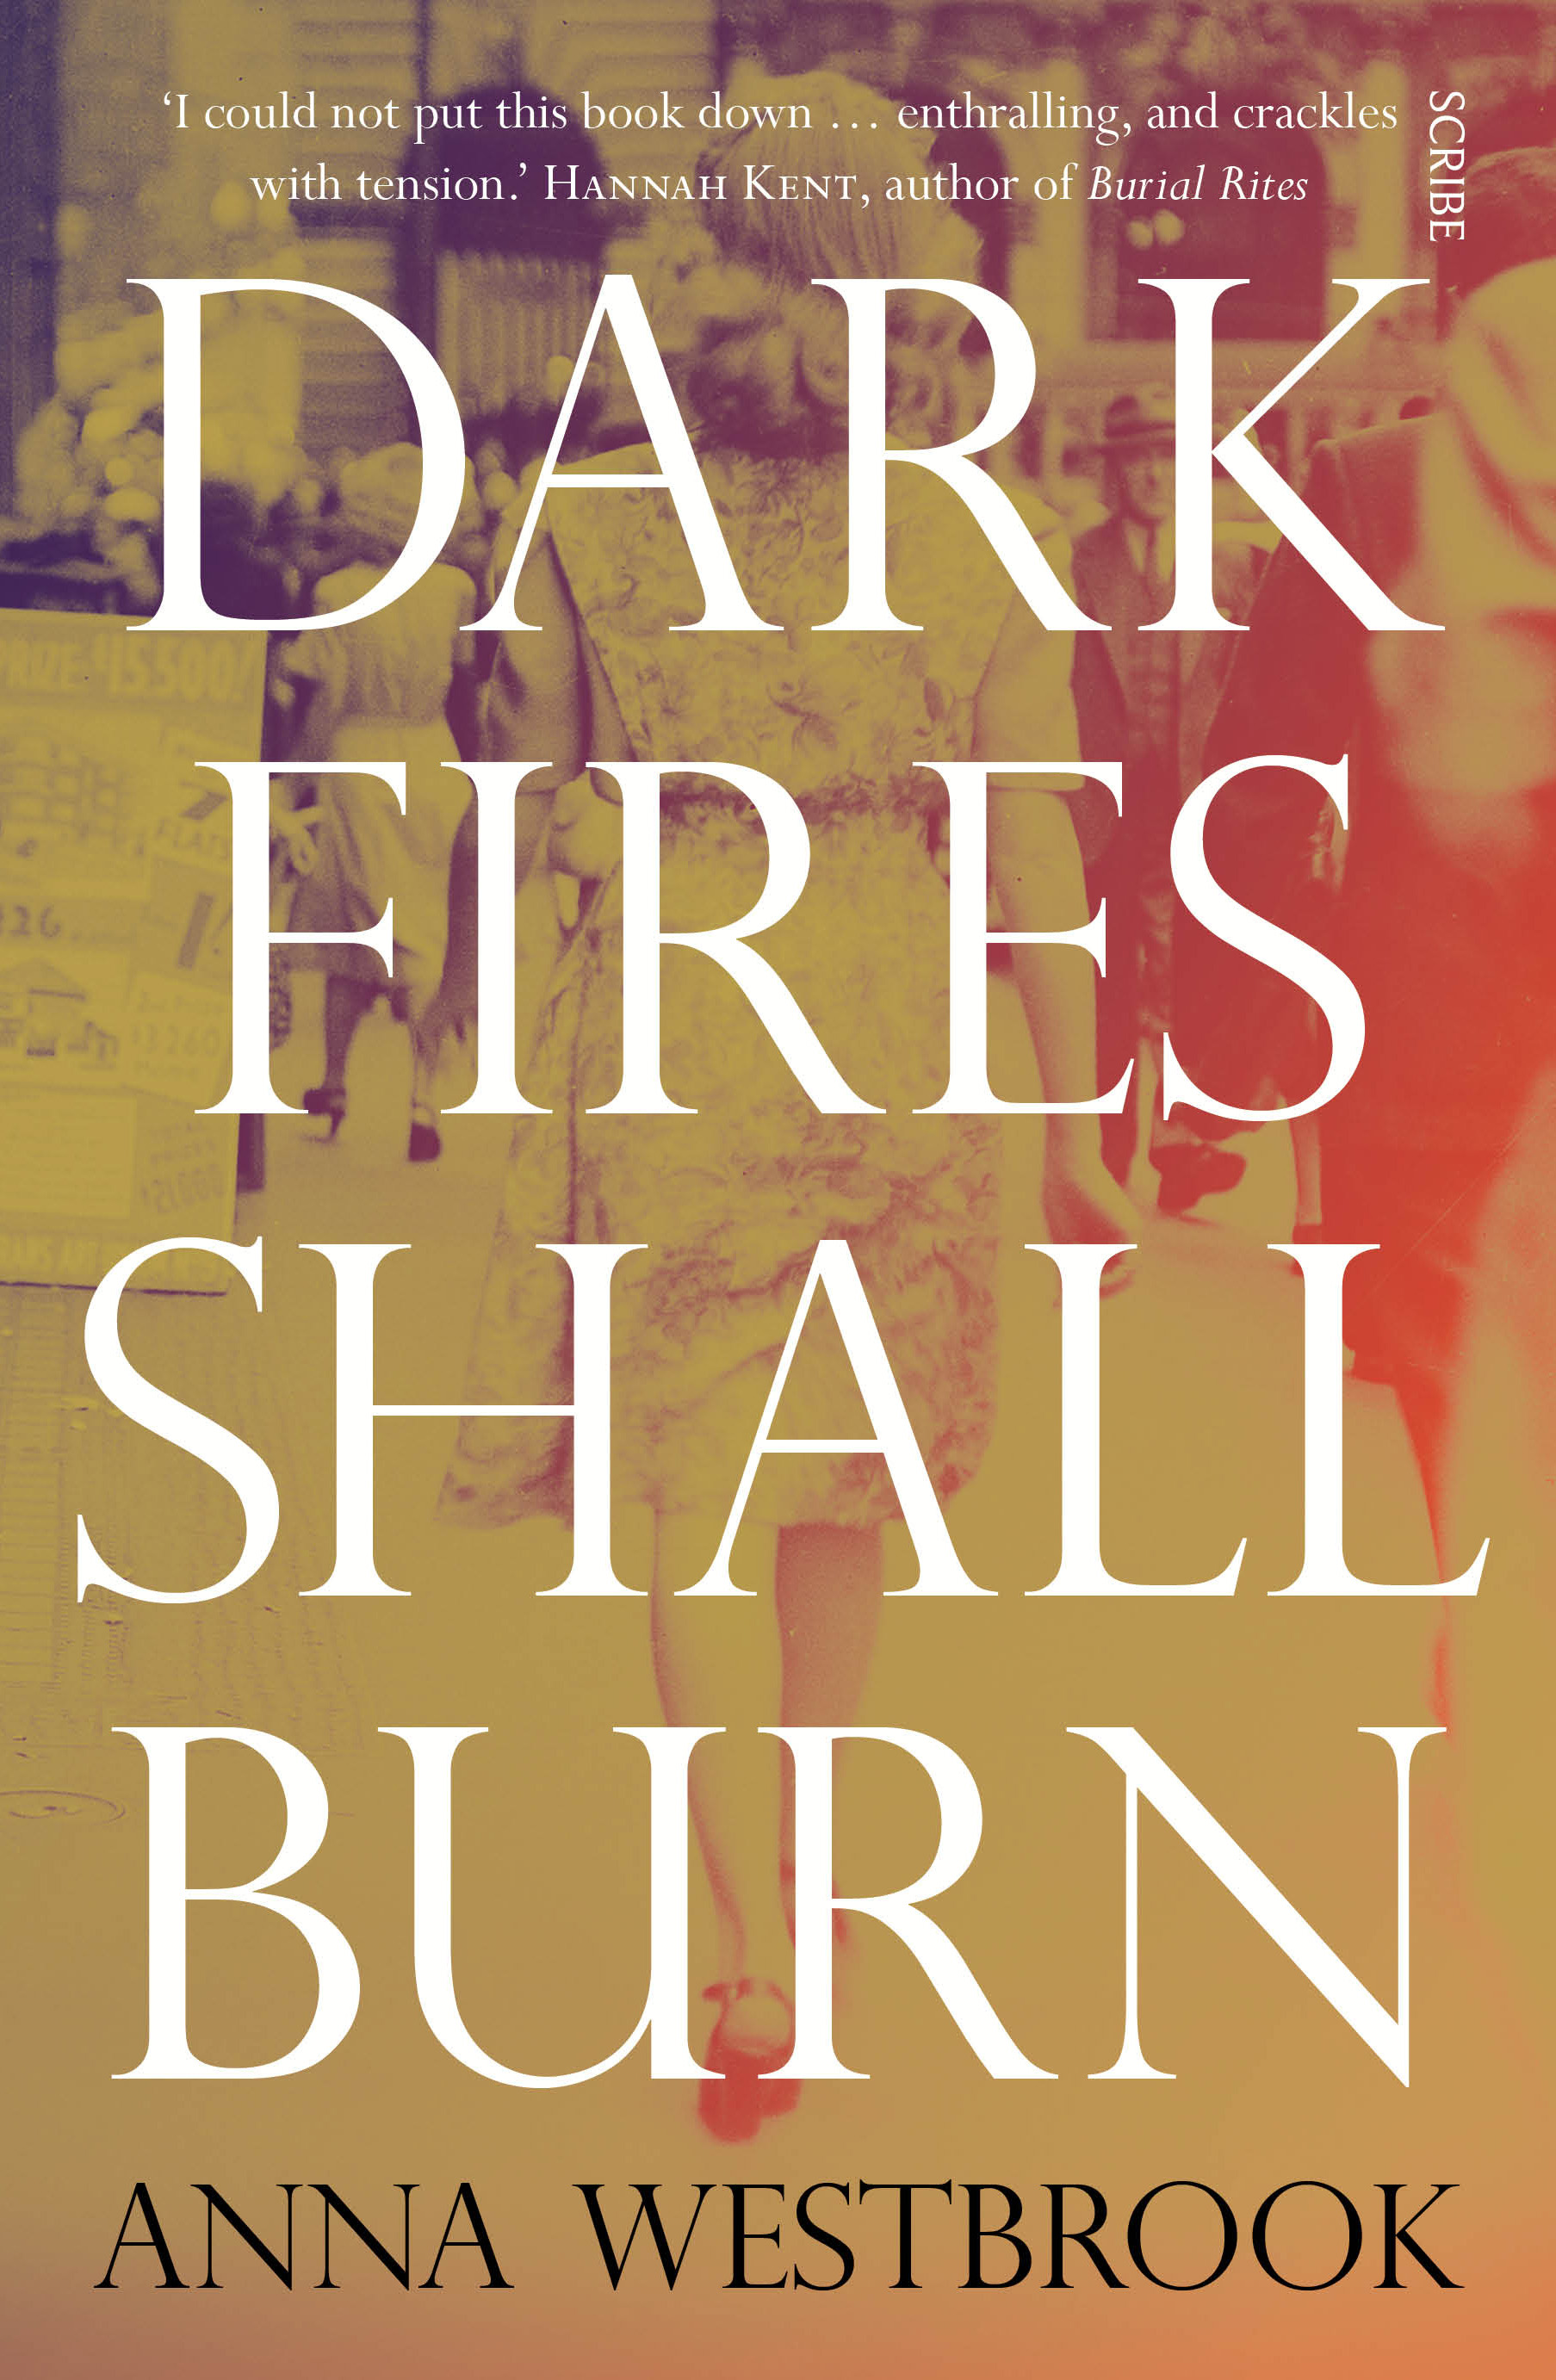 Dark Fires Shall Burn by Anna Westbrook, ISBN: 9781925321227